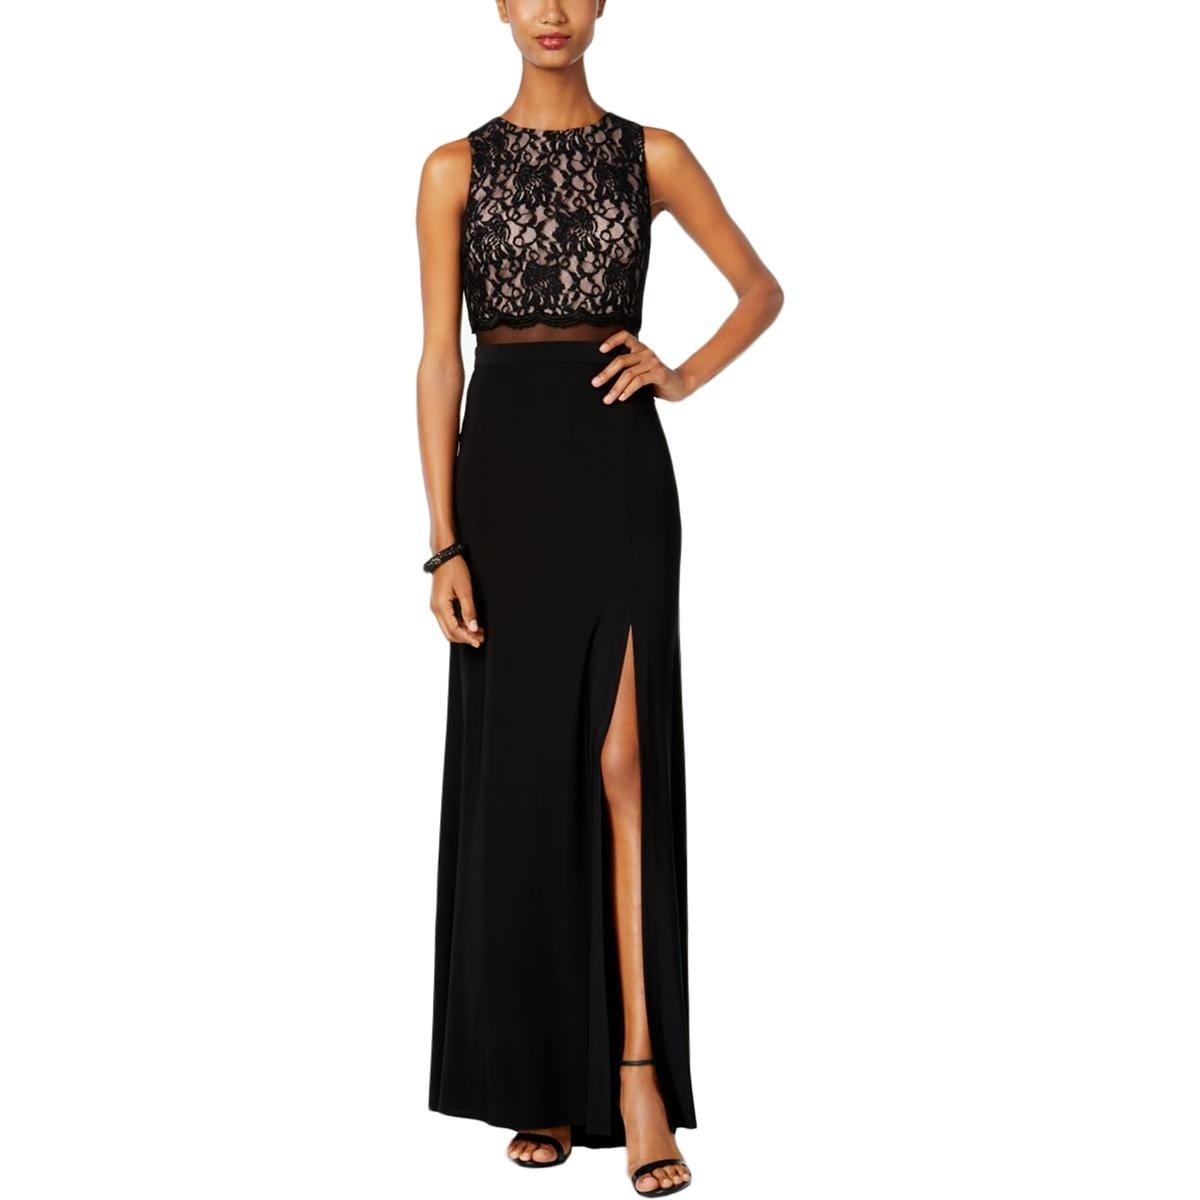 129bc131263 Shop Nightway Womens Evening Dress Slit Lace - Free Shipping On Orders Over  $45 - Overstock - 19814020